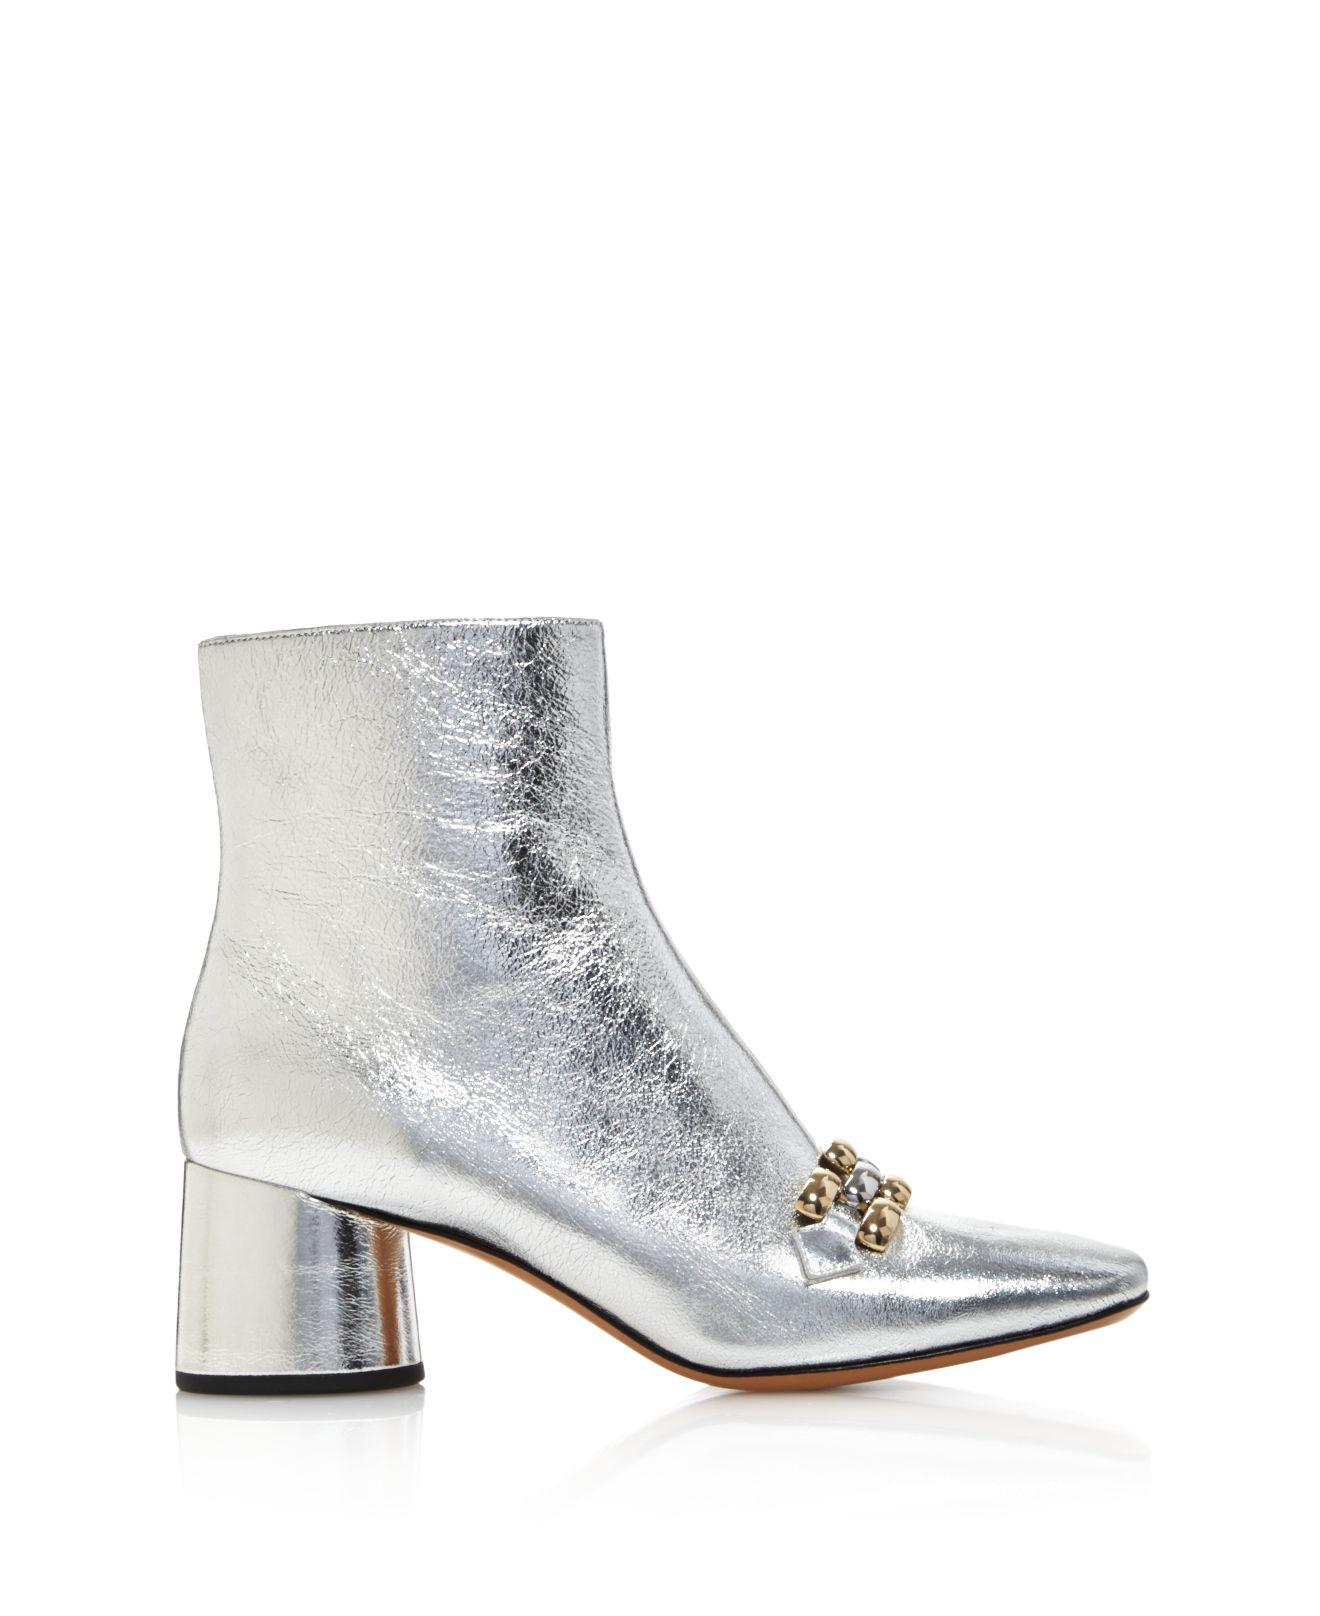 Discount Get To Buy Outlet Store Marc Jacobs Women's Remi Leather & Chain Link Ankle Booties Clearance Low Price Order Online SWGp4v0